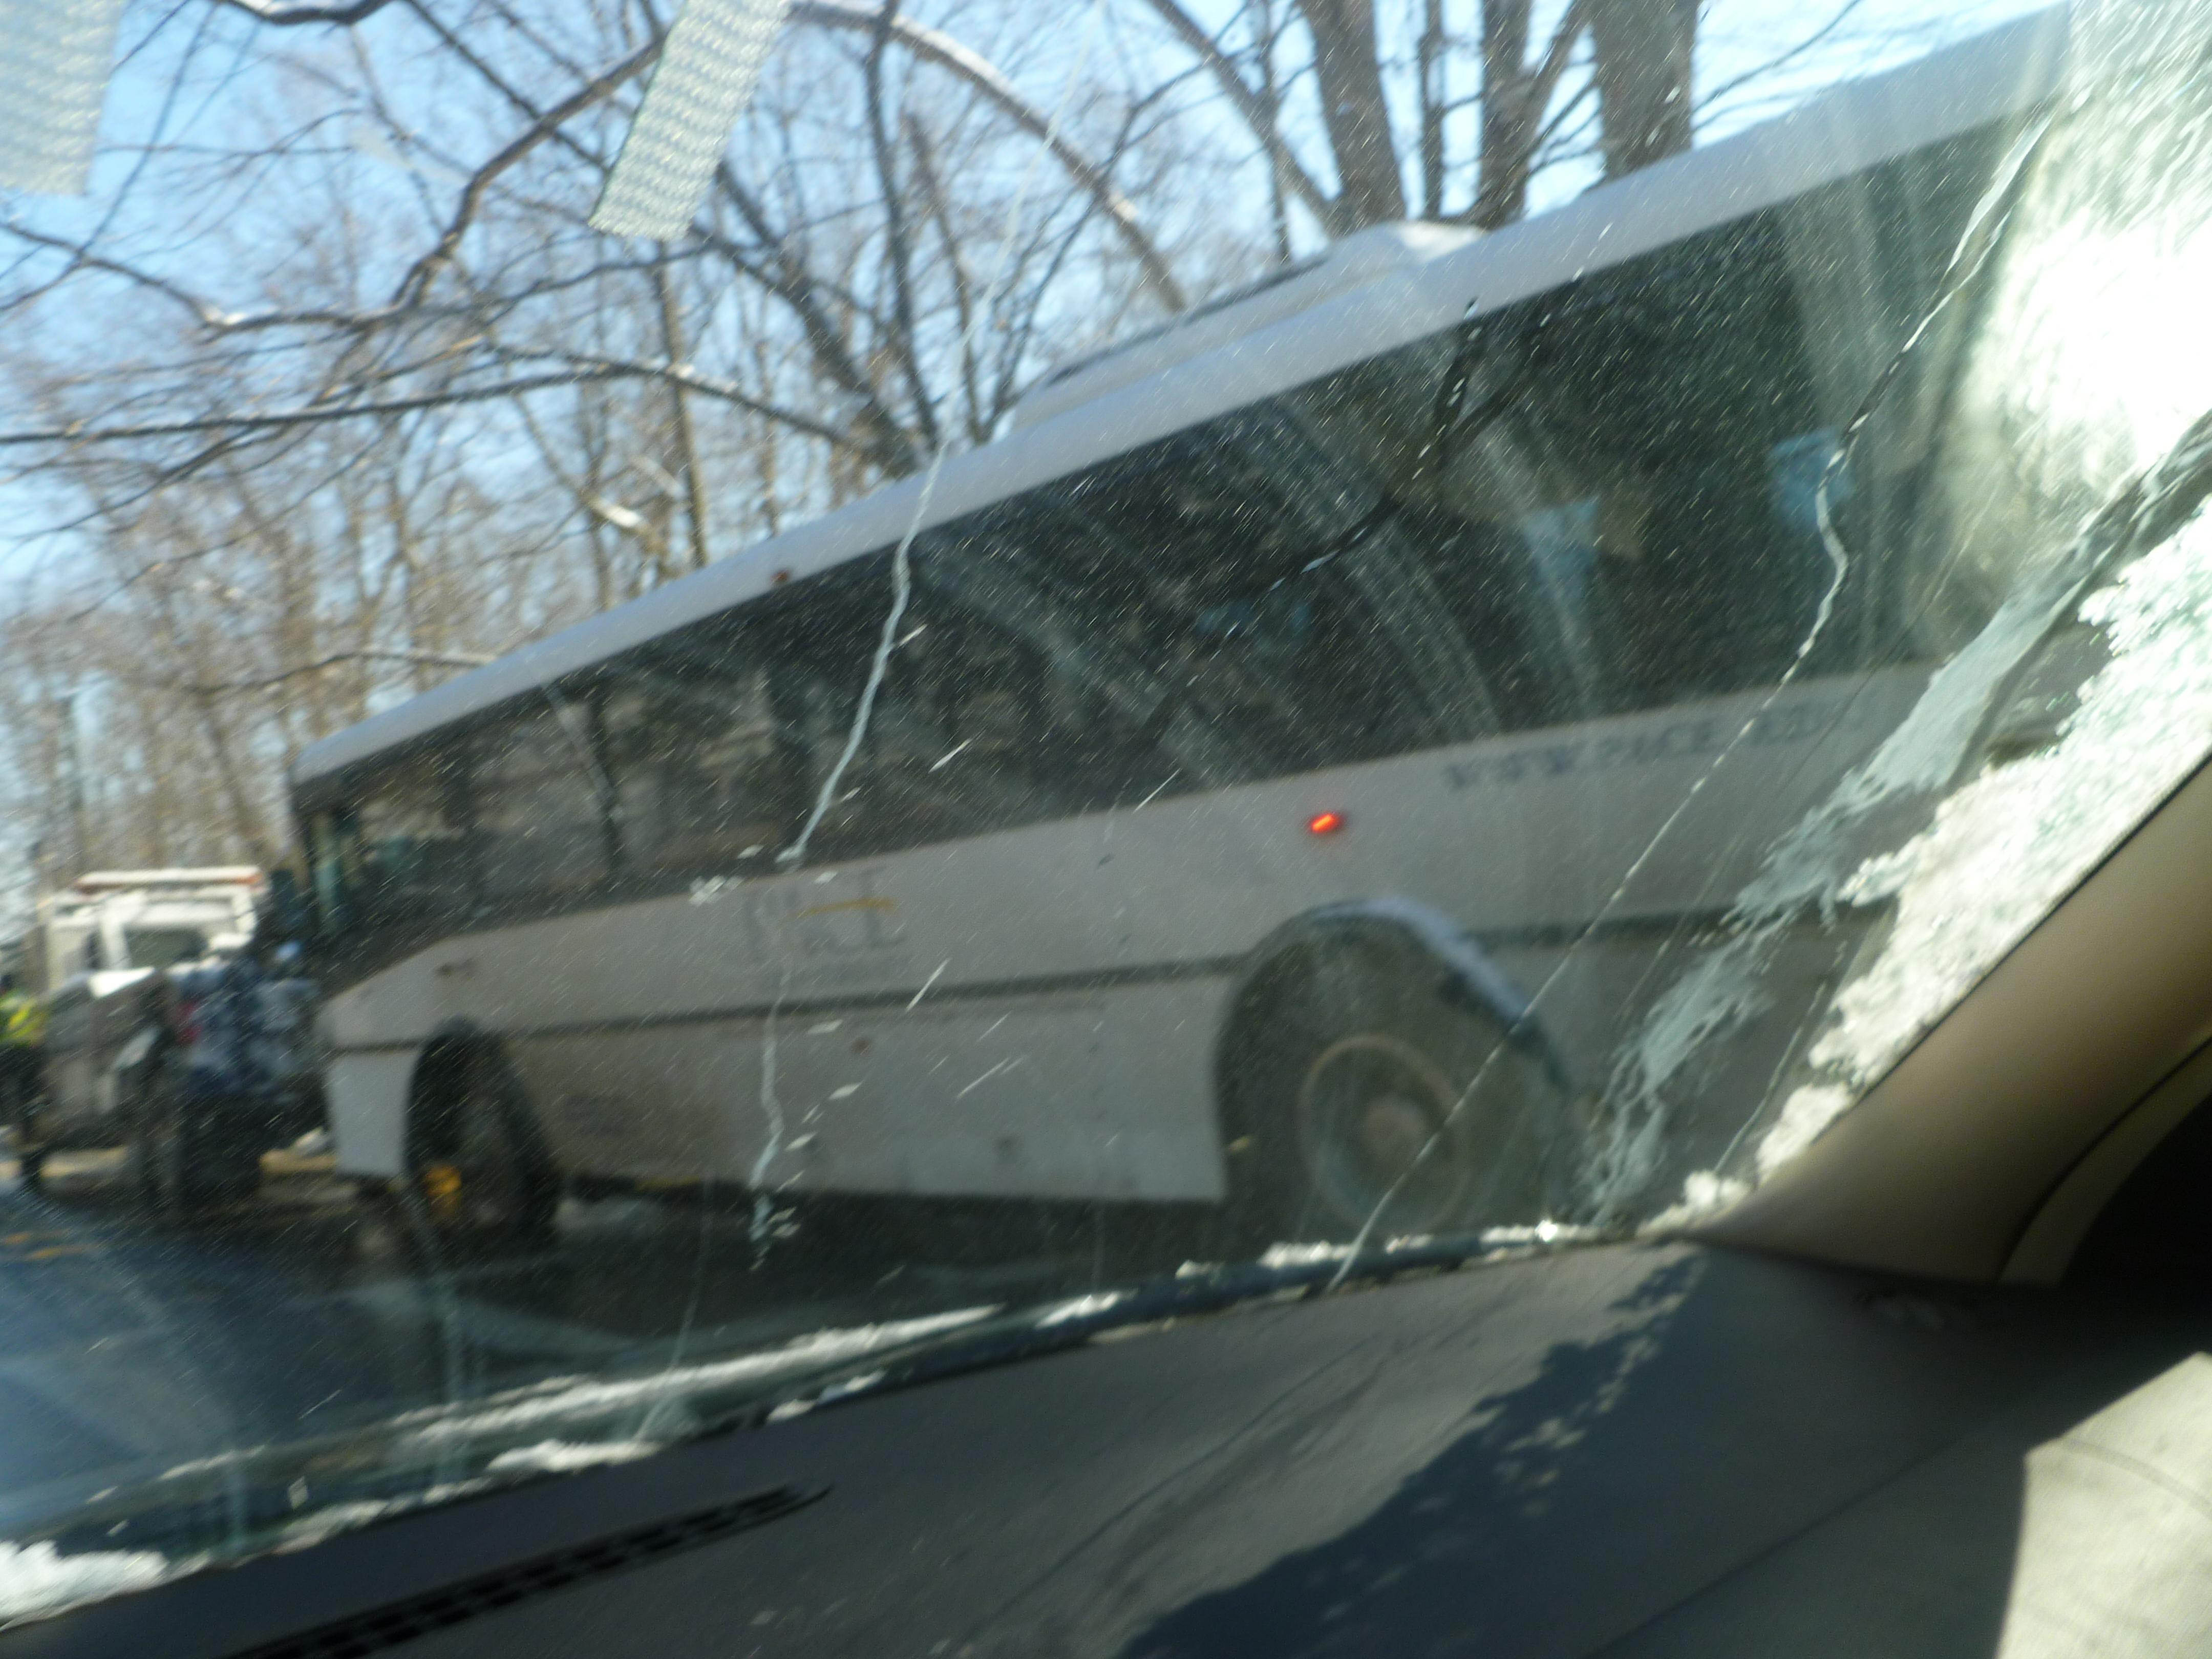 Mount Pleasant Police at the scene of an accident involving a Pace University bus. One person sustained an injury.